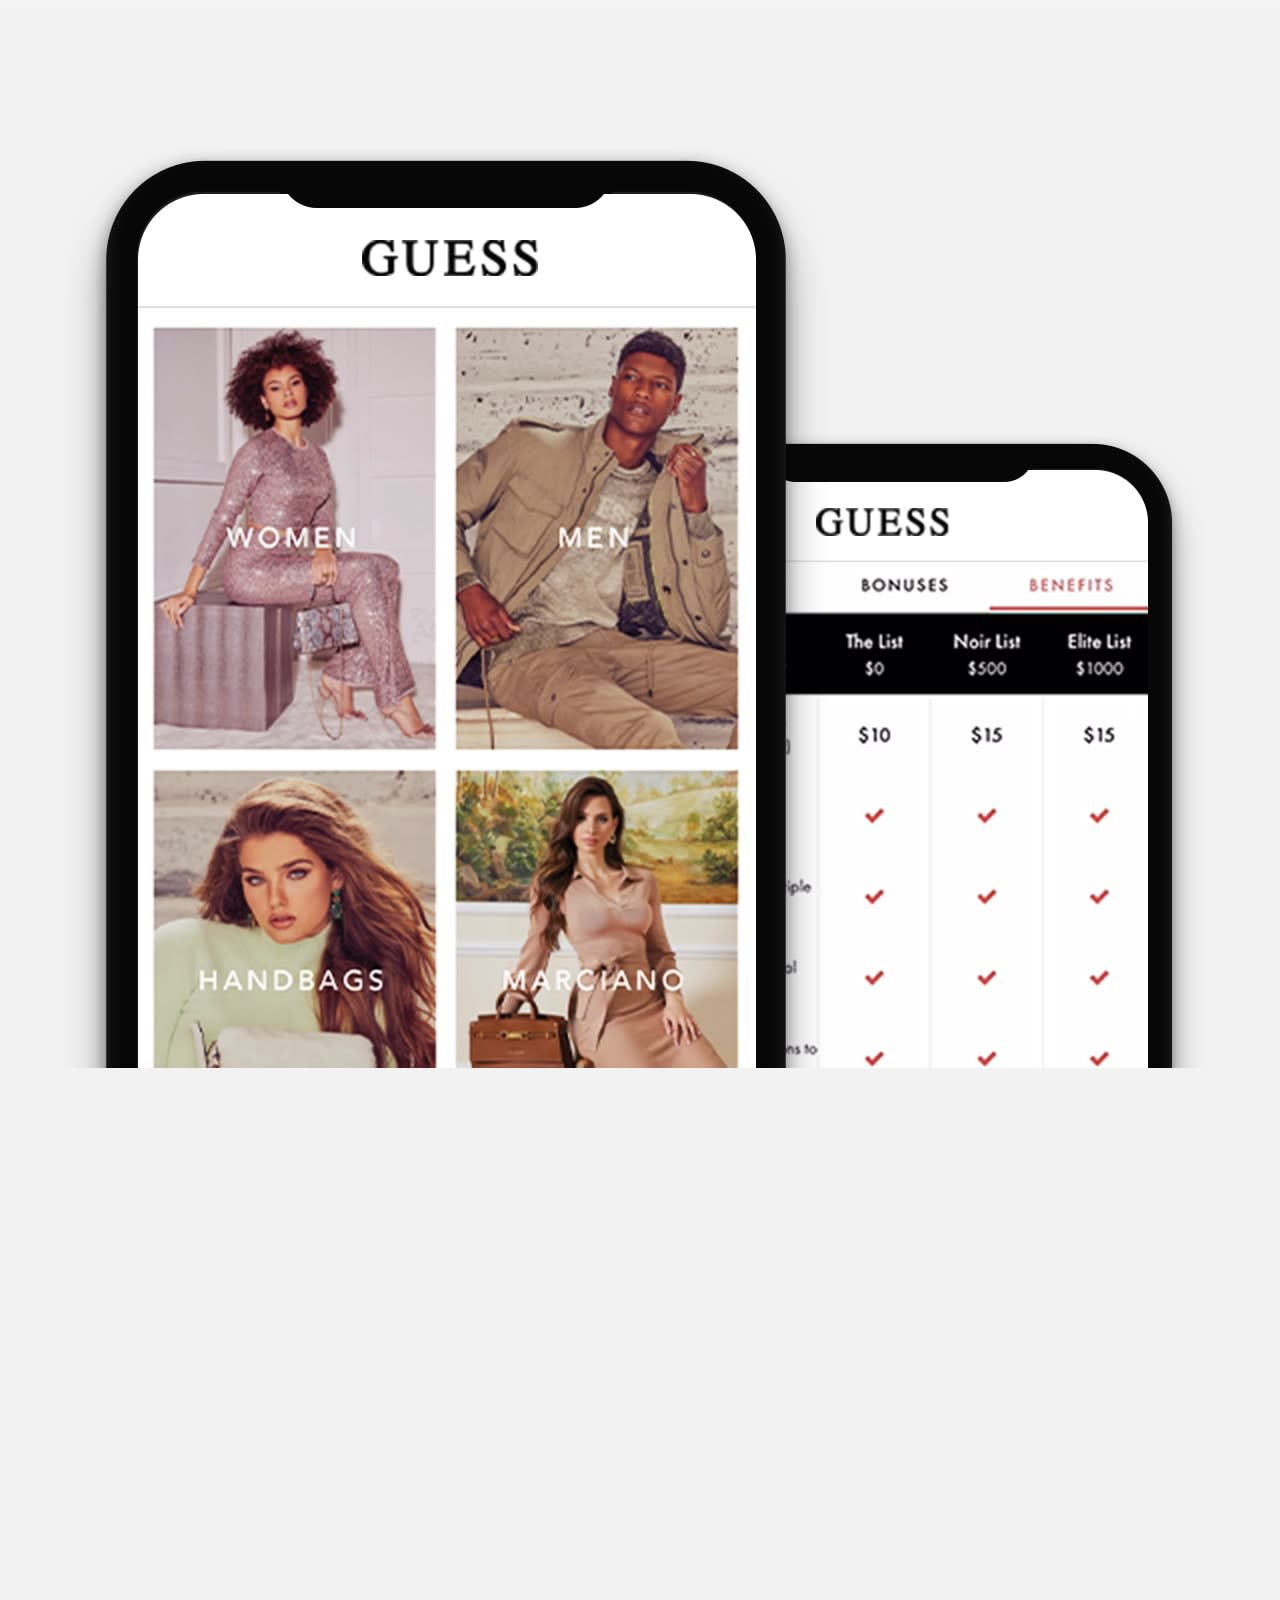 Hands-on Fashion: The GUESS Mobile App | GUESS